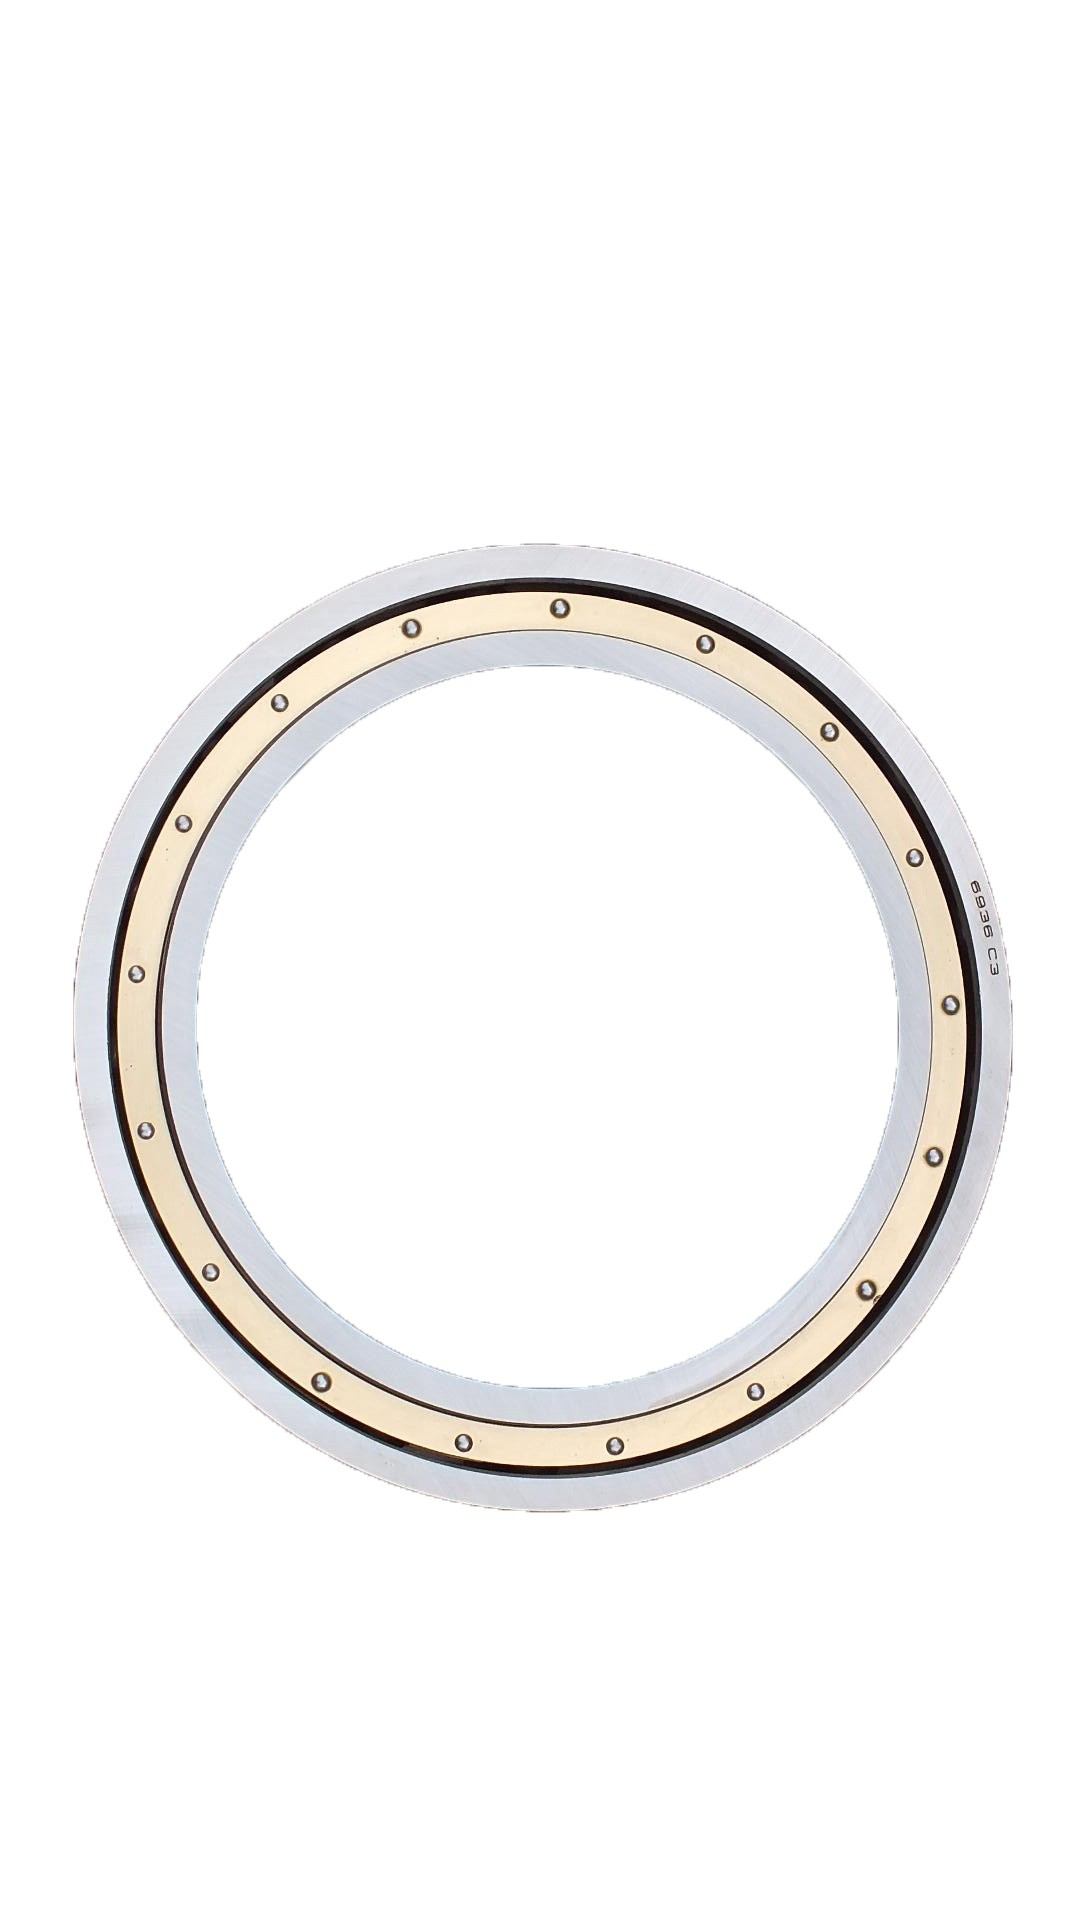 6313 2RS, 6313 Zz-Z1V1/Z2V2/Z3V3 High Quality Good Price Ball Bearings Factory,,Auto Parts,Roller Bearing,Zz,2RS,Open Deep Groove Ball Bearing, SKF Bearing,OEM,